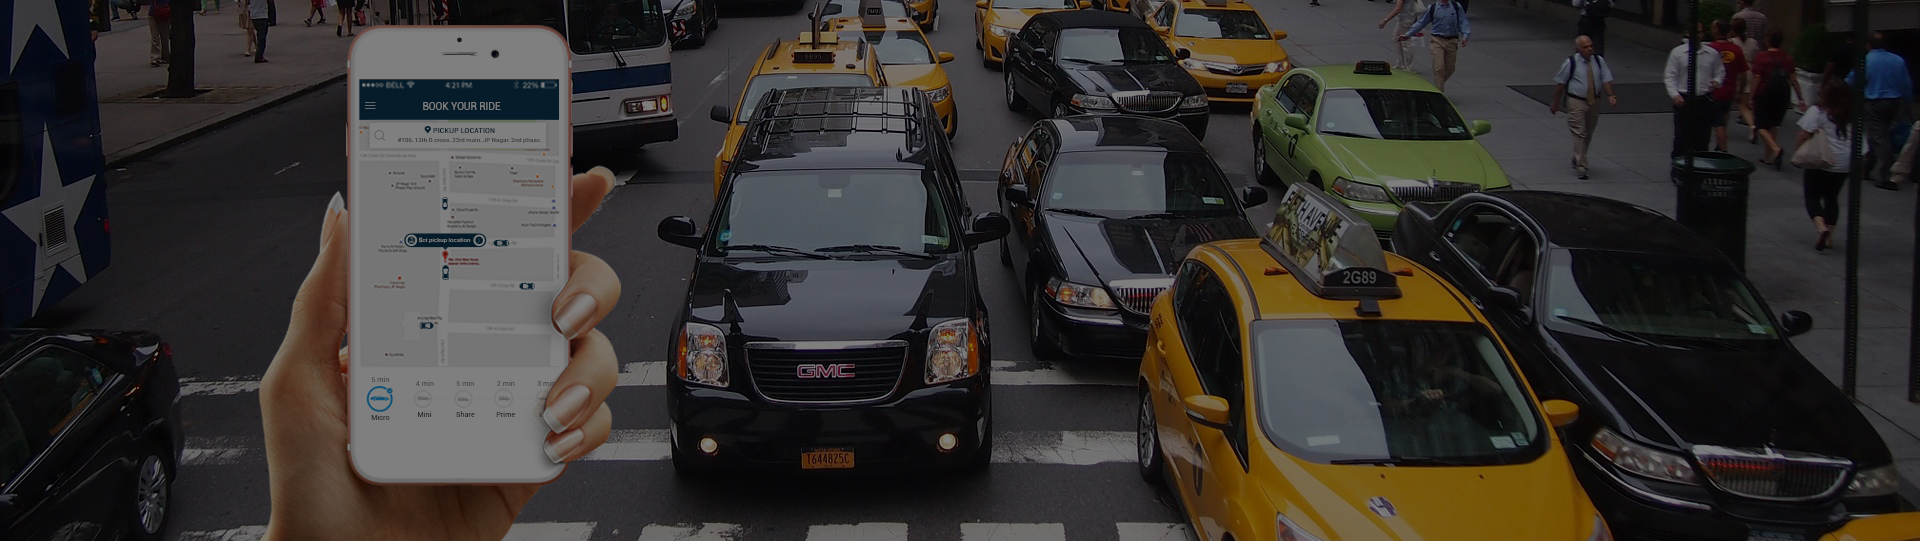 How to start the Uber-like online taxi booking business